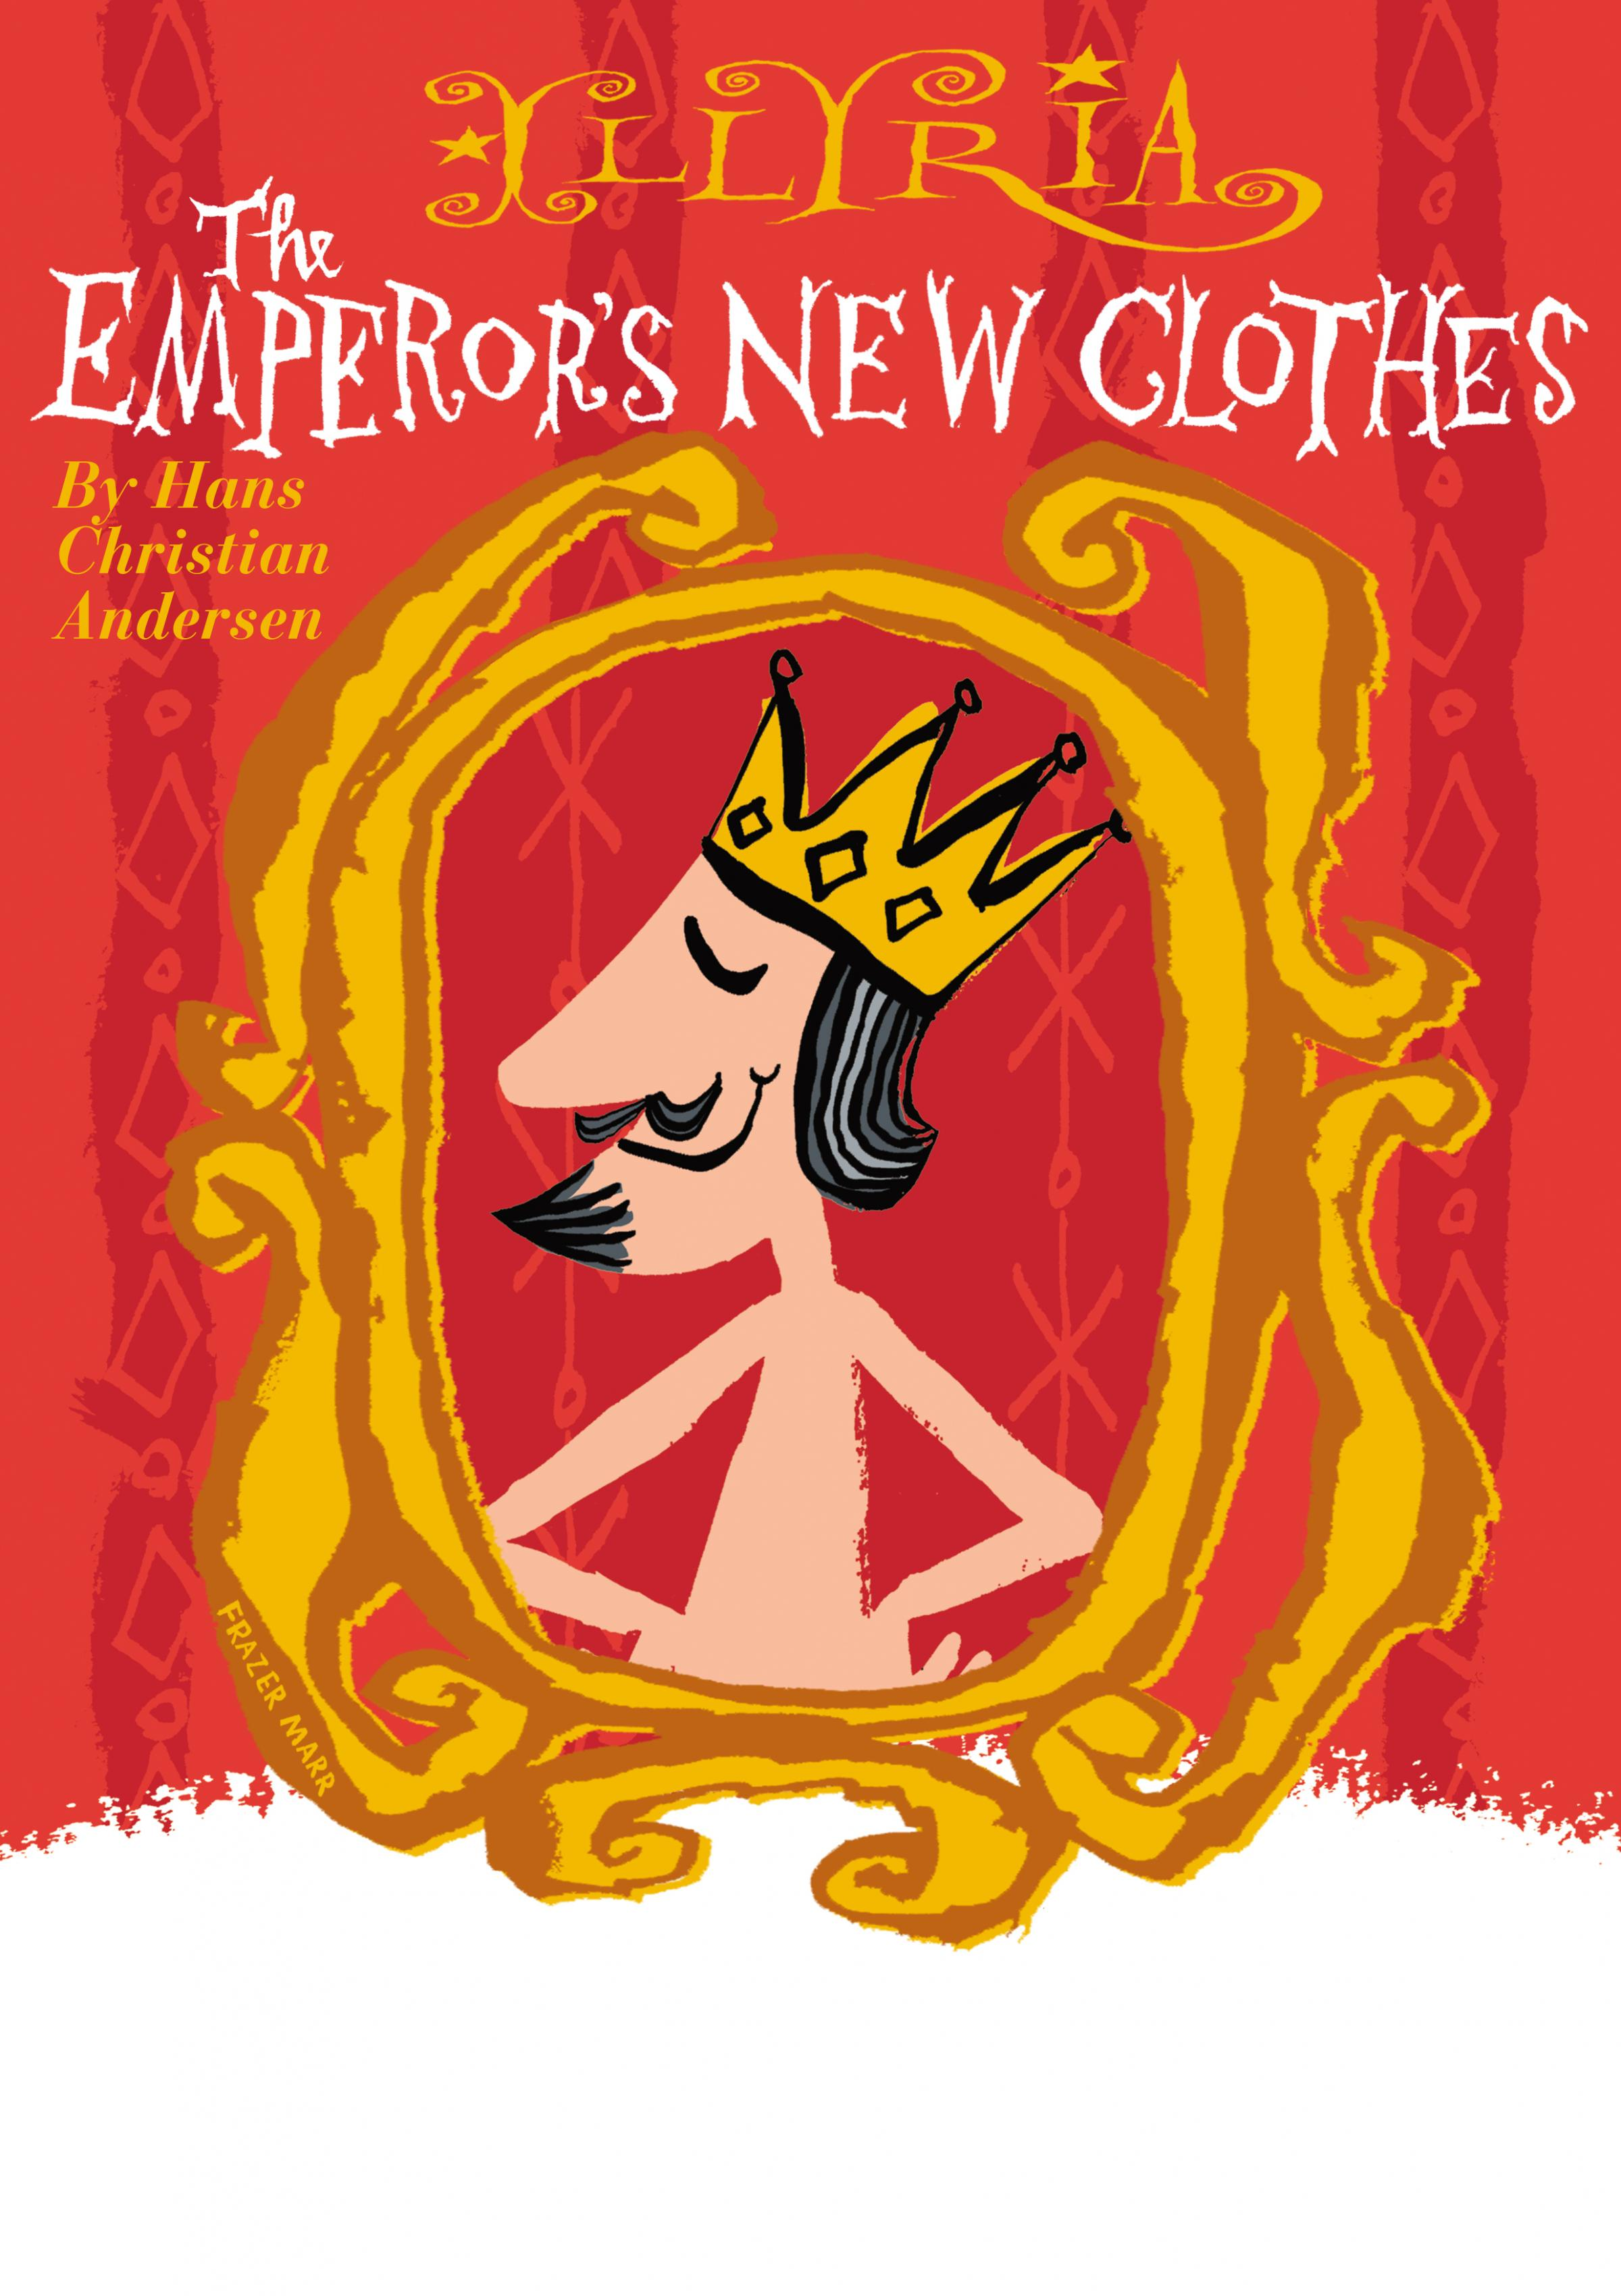 Illyria performance of The Emperor's New Clothes